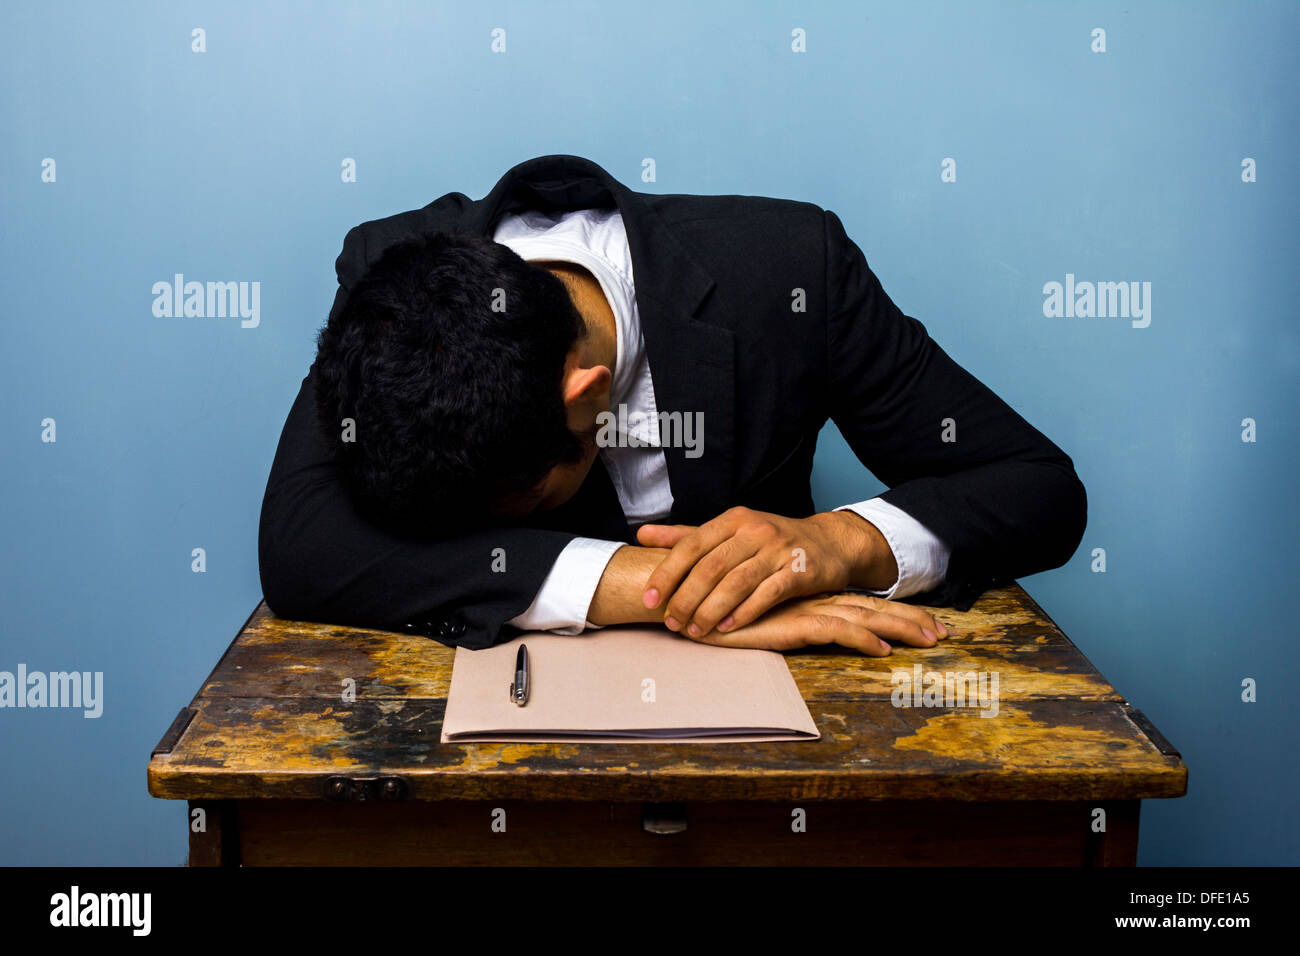 Businessman is sleeping at desk after signing contract - Stock Image